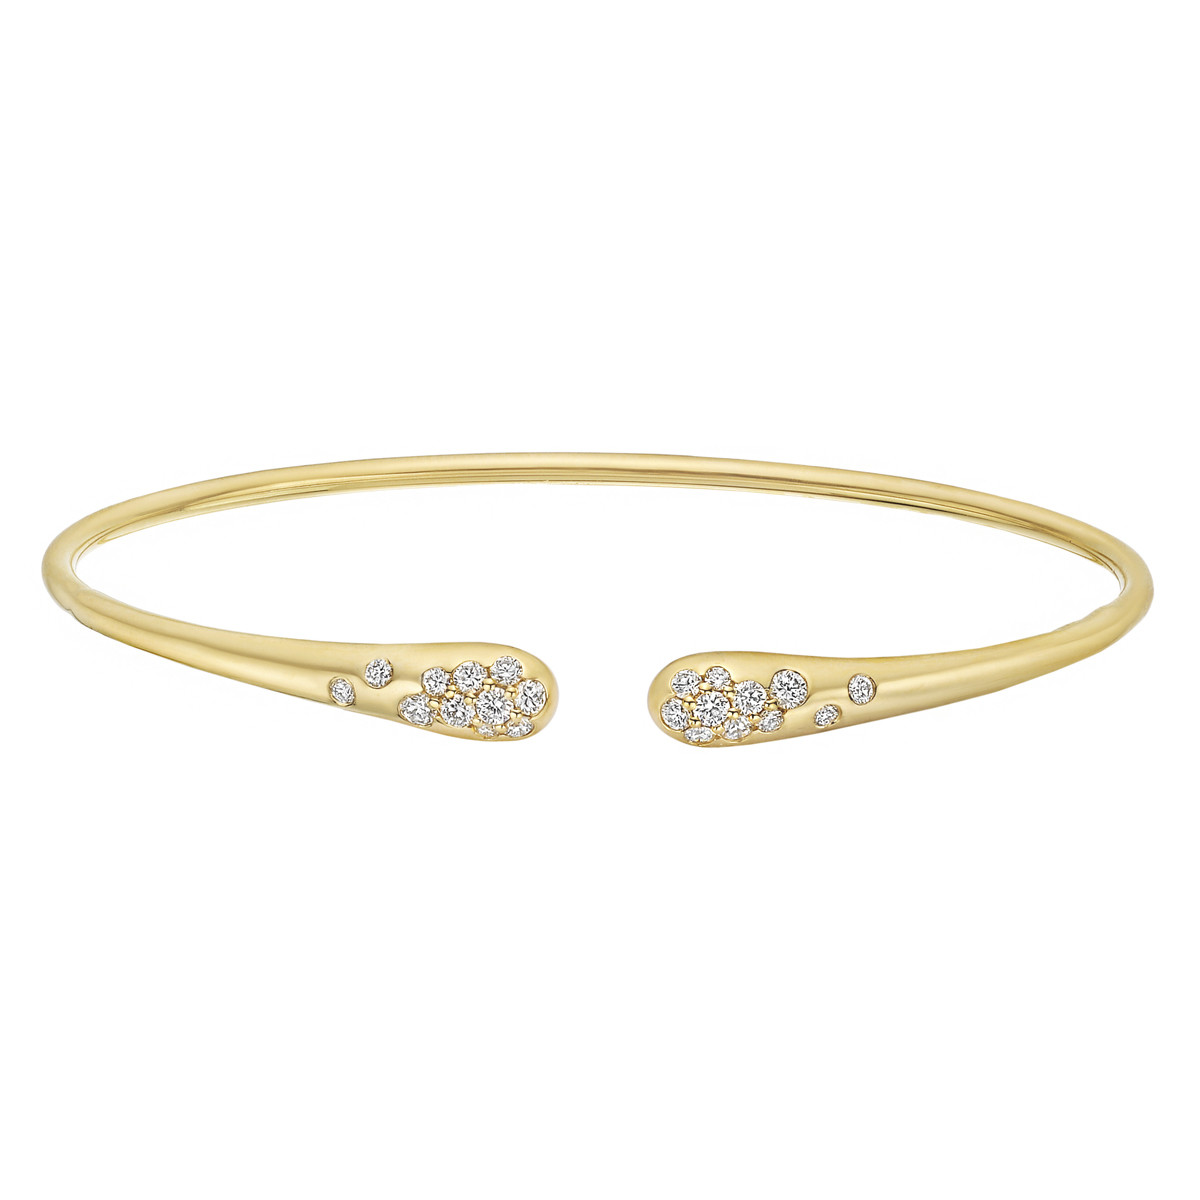 18k Yellow Gold & Diamond Sprinkle Cuff